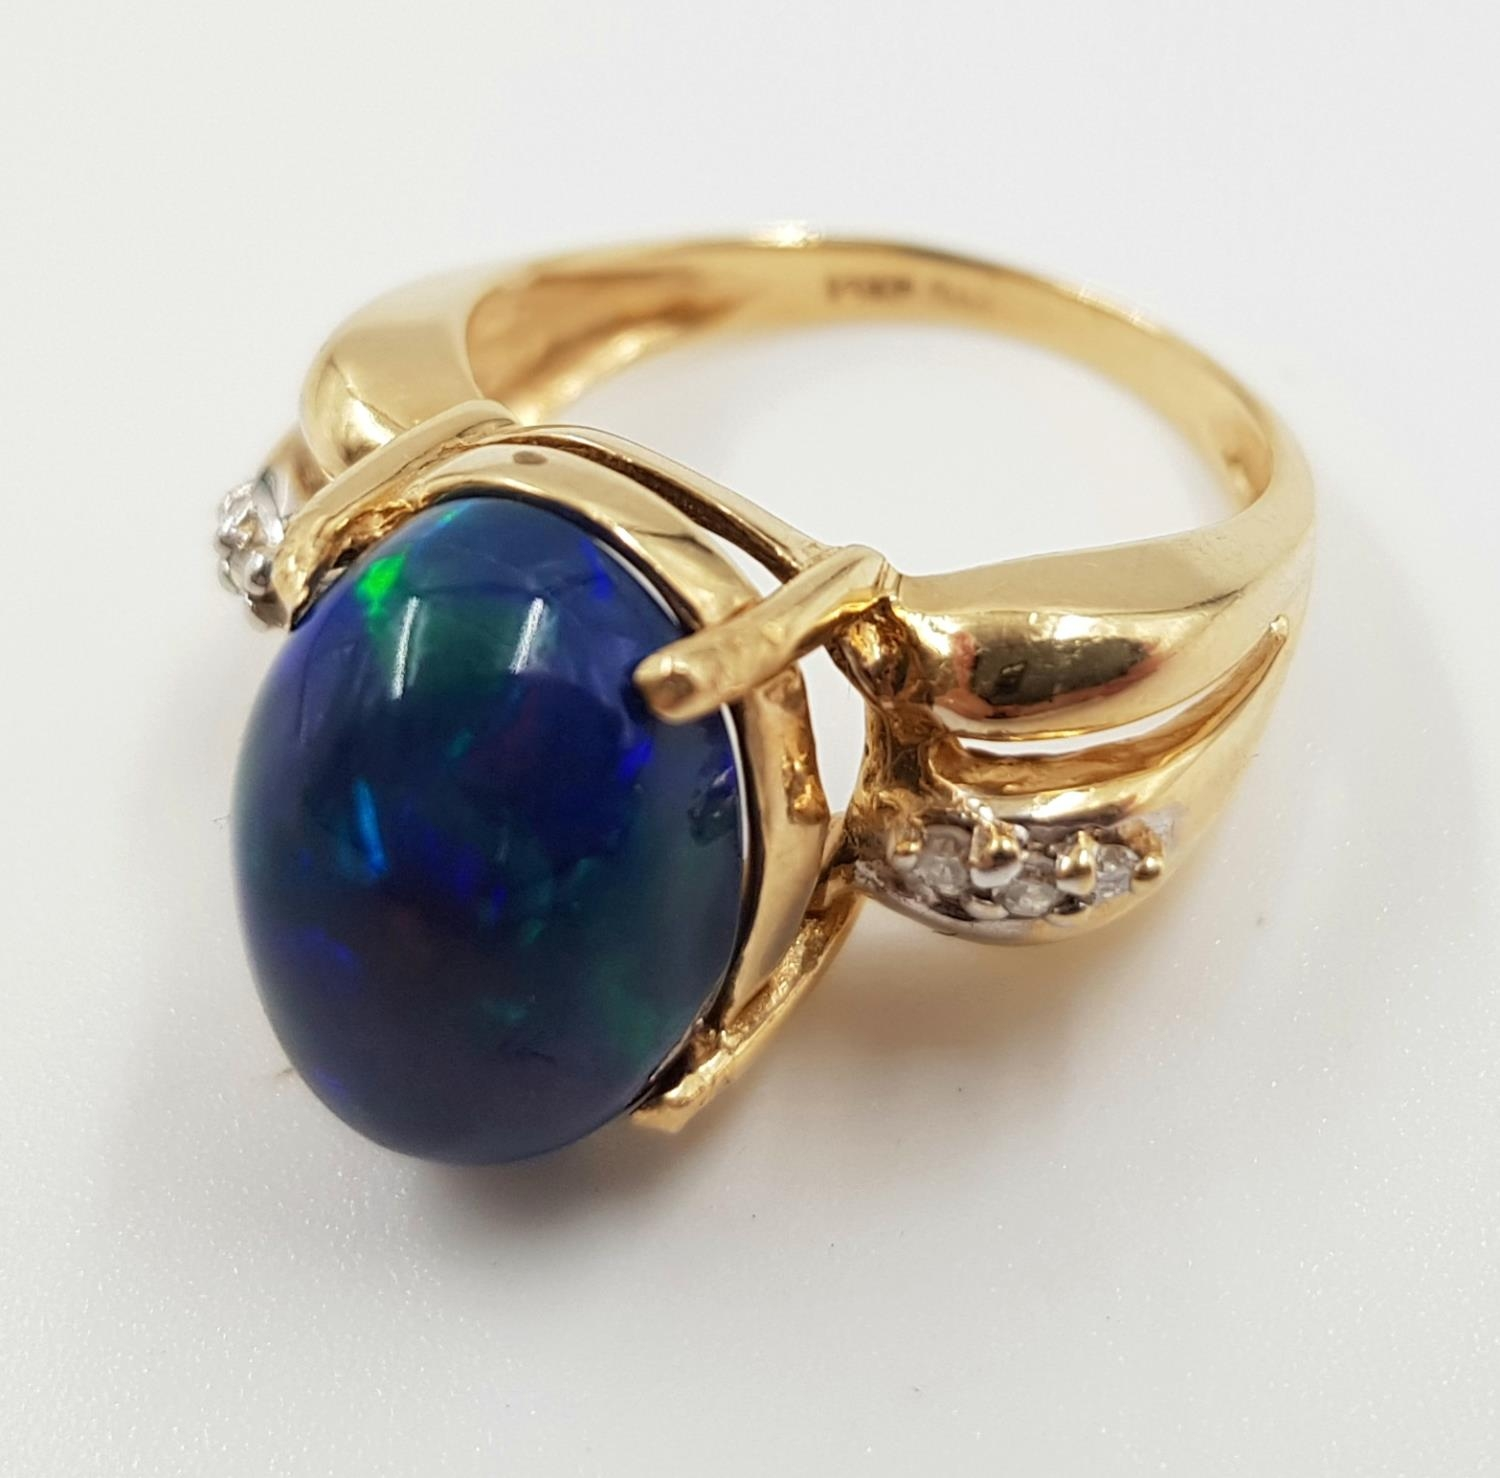 A 14ct gold, opal and diamond ring. 5g total weight and is size M.